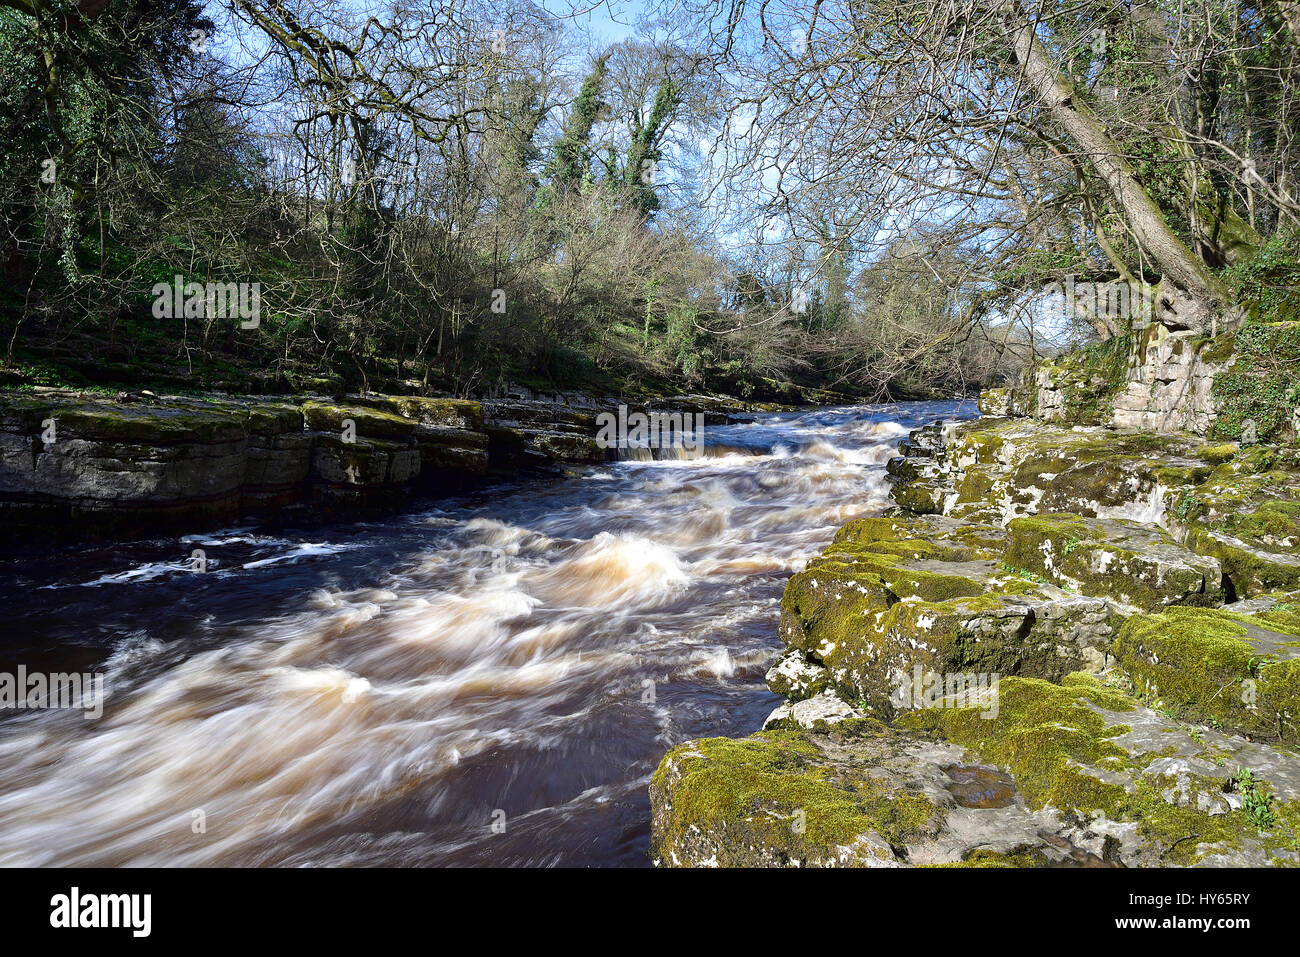 River Tees near Egglestone Bridge showing a secluded section of the river in spate - Stock Image